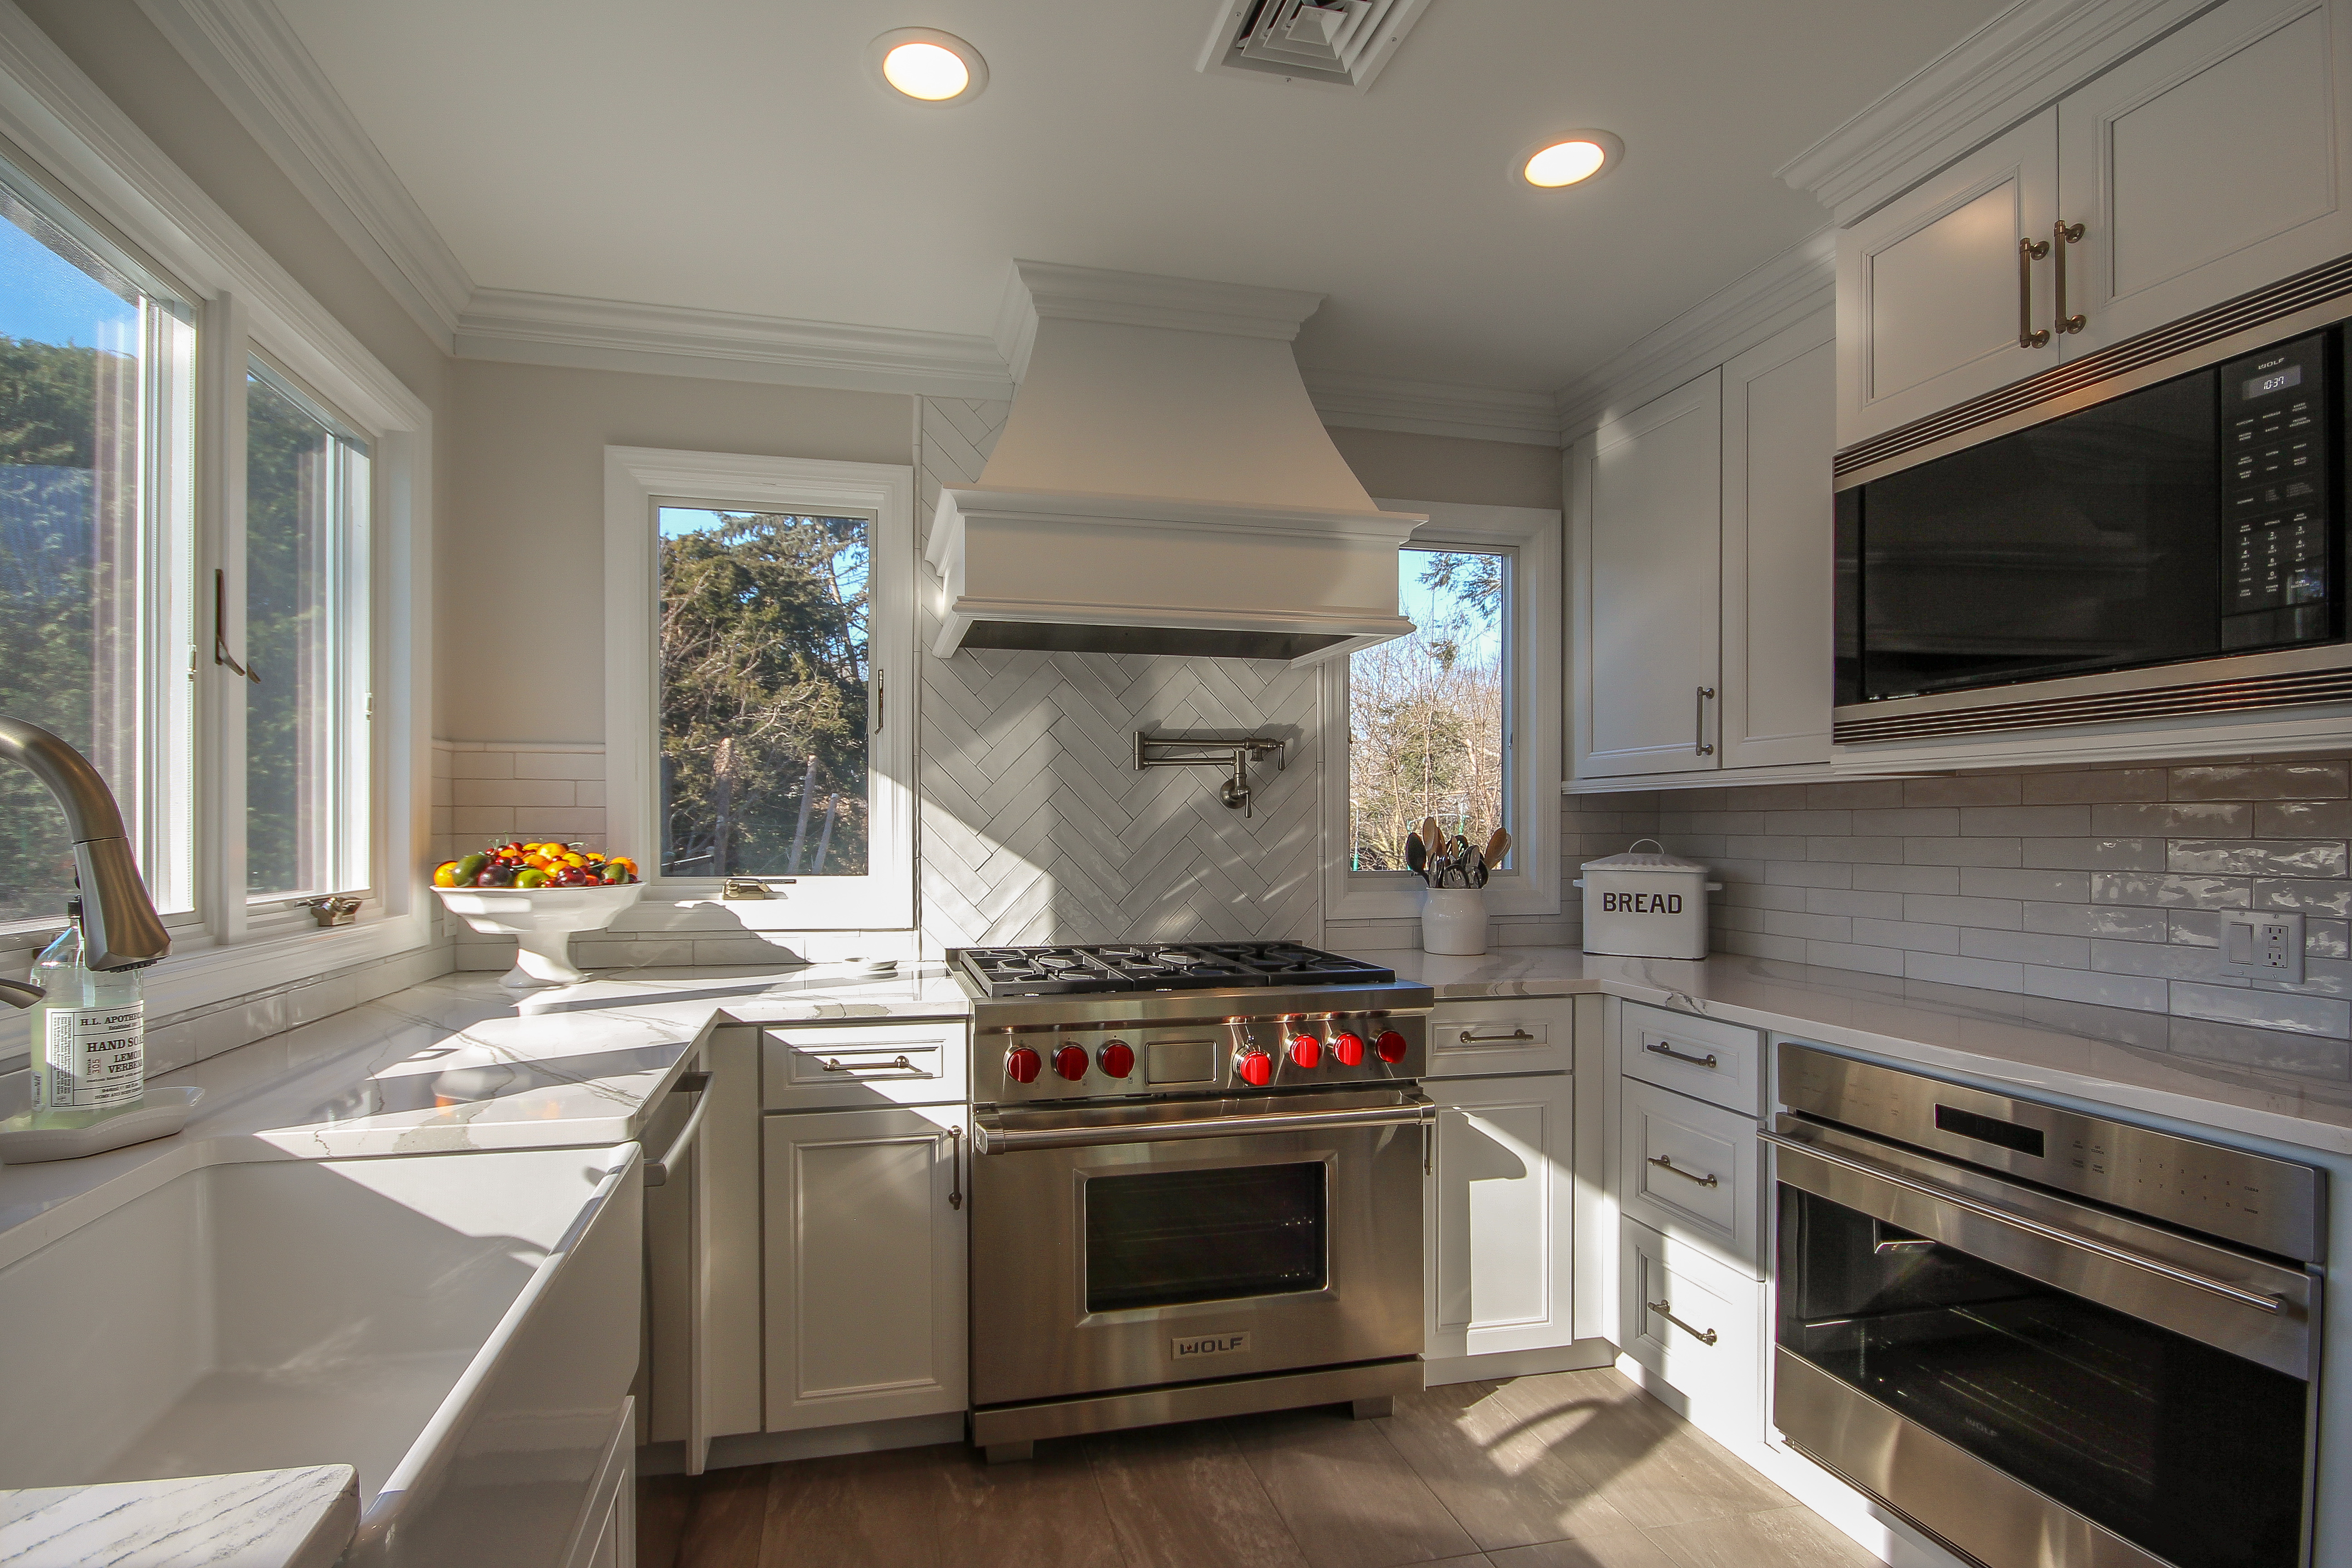 Kitchen Remodeling Ideas & Trends for 2019 on Kitchen Remodeling Ideas  id=48859